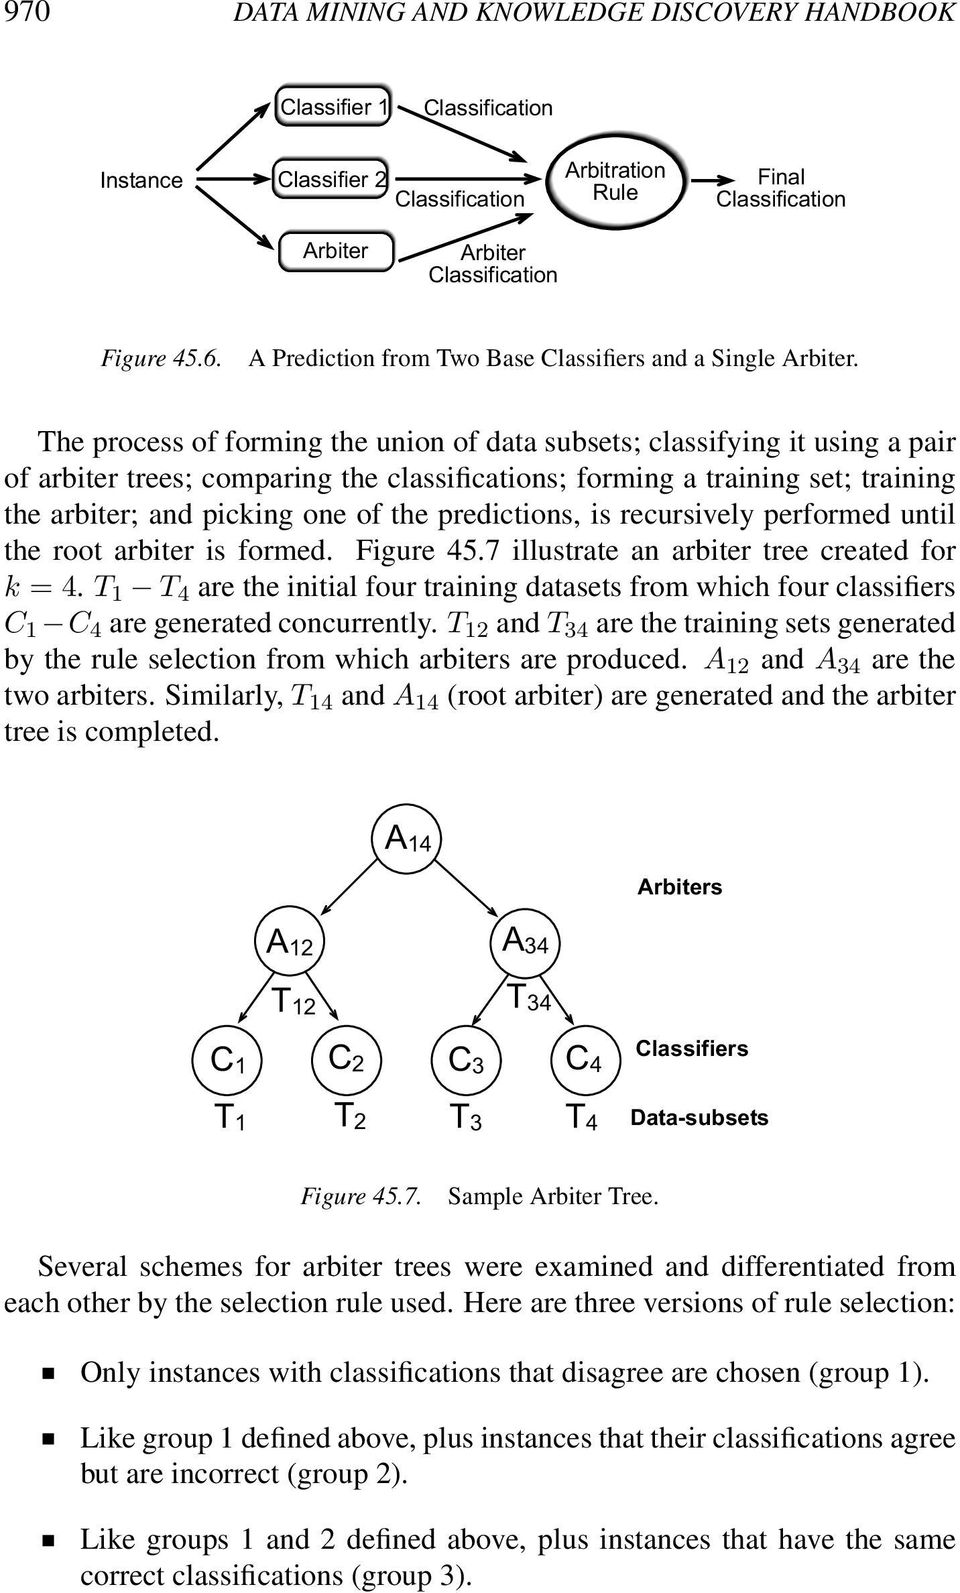 The process of forming the union of data subsets; classifying it using a pair of arbiter trees; comparing the classifications; forming a training set; training the arbiter; and picking one of the